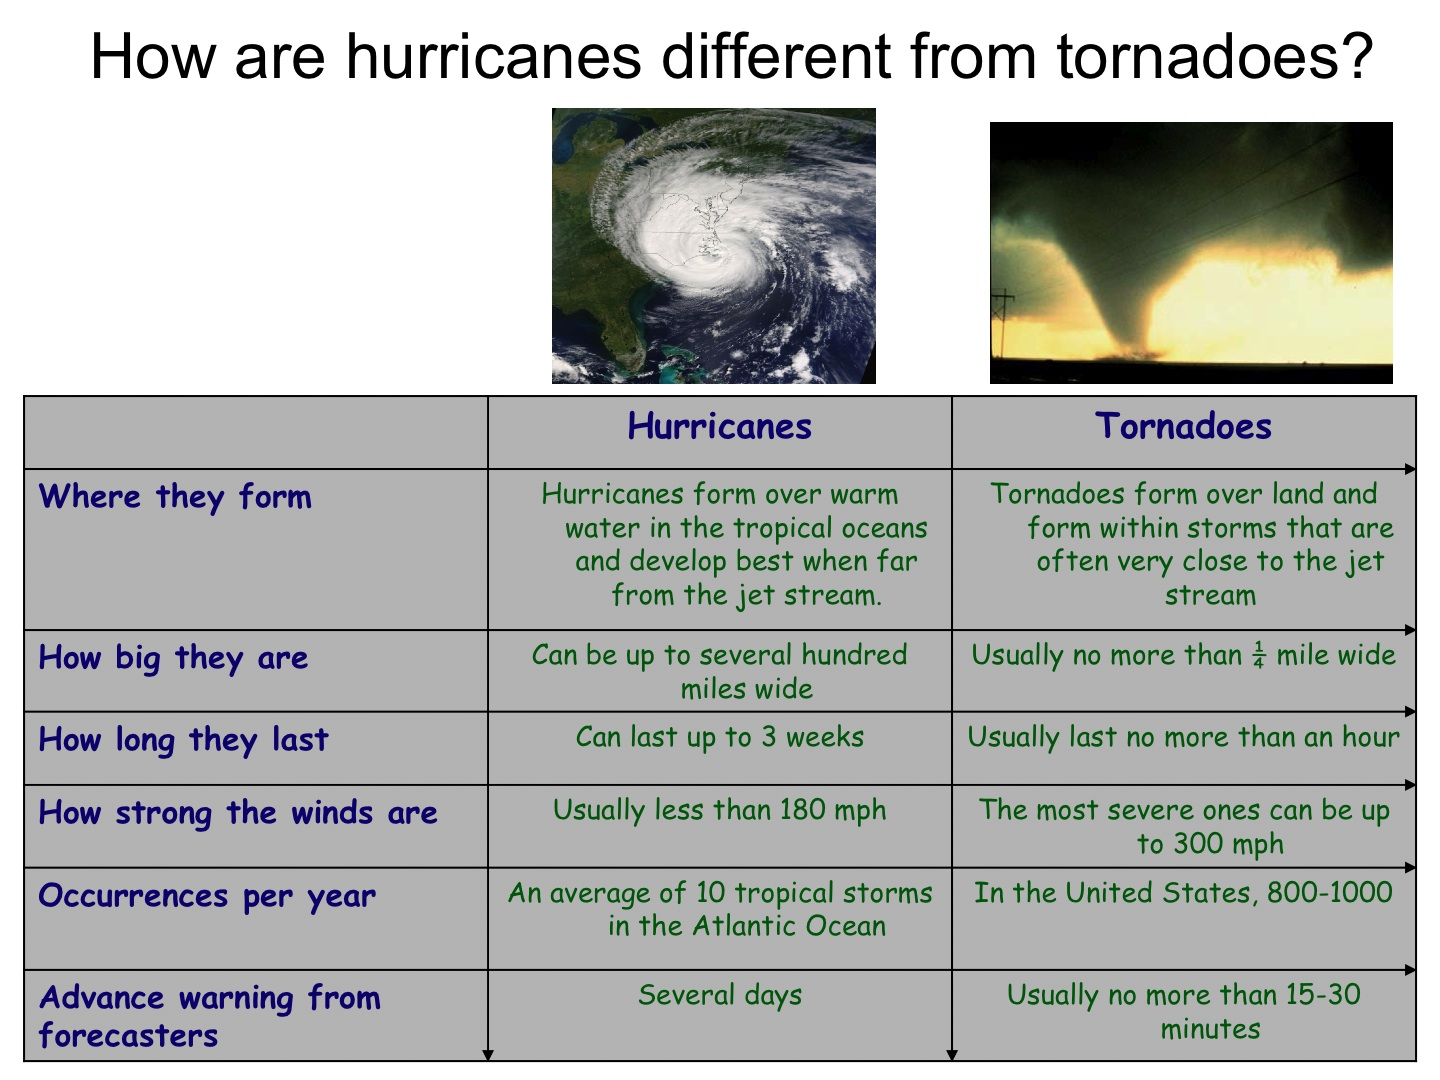 worksheet Tornado Worksheets hurricanes science and society tornadoes table describing the differences between tornadoes